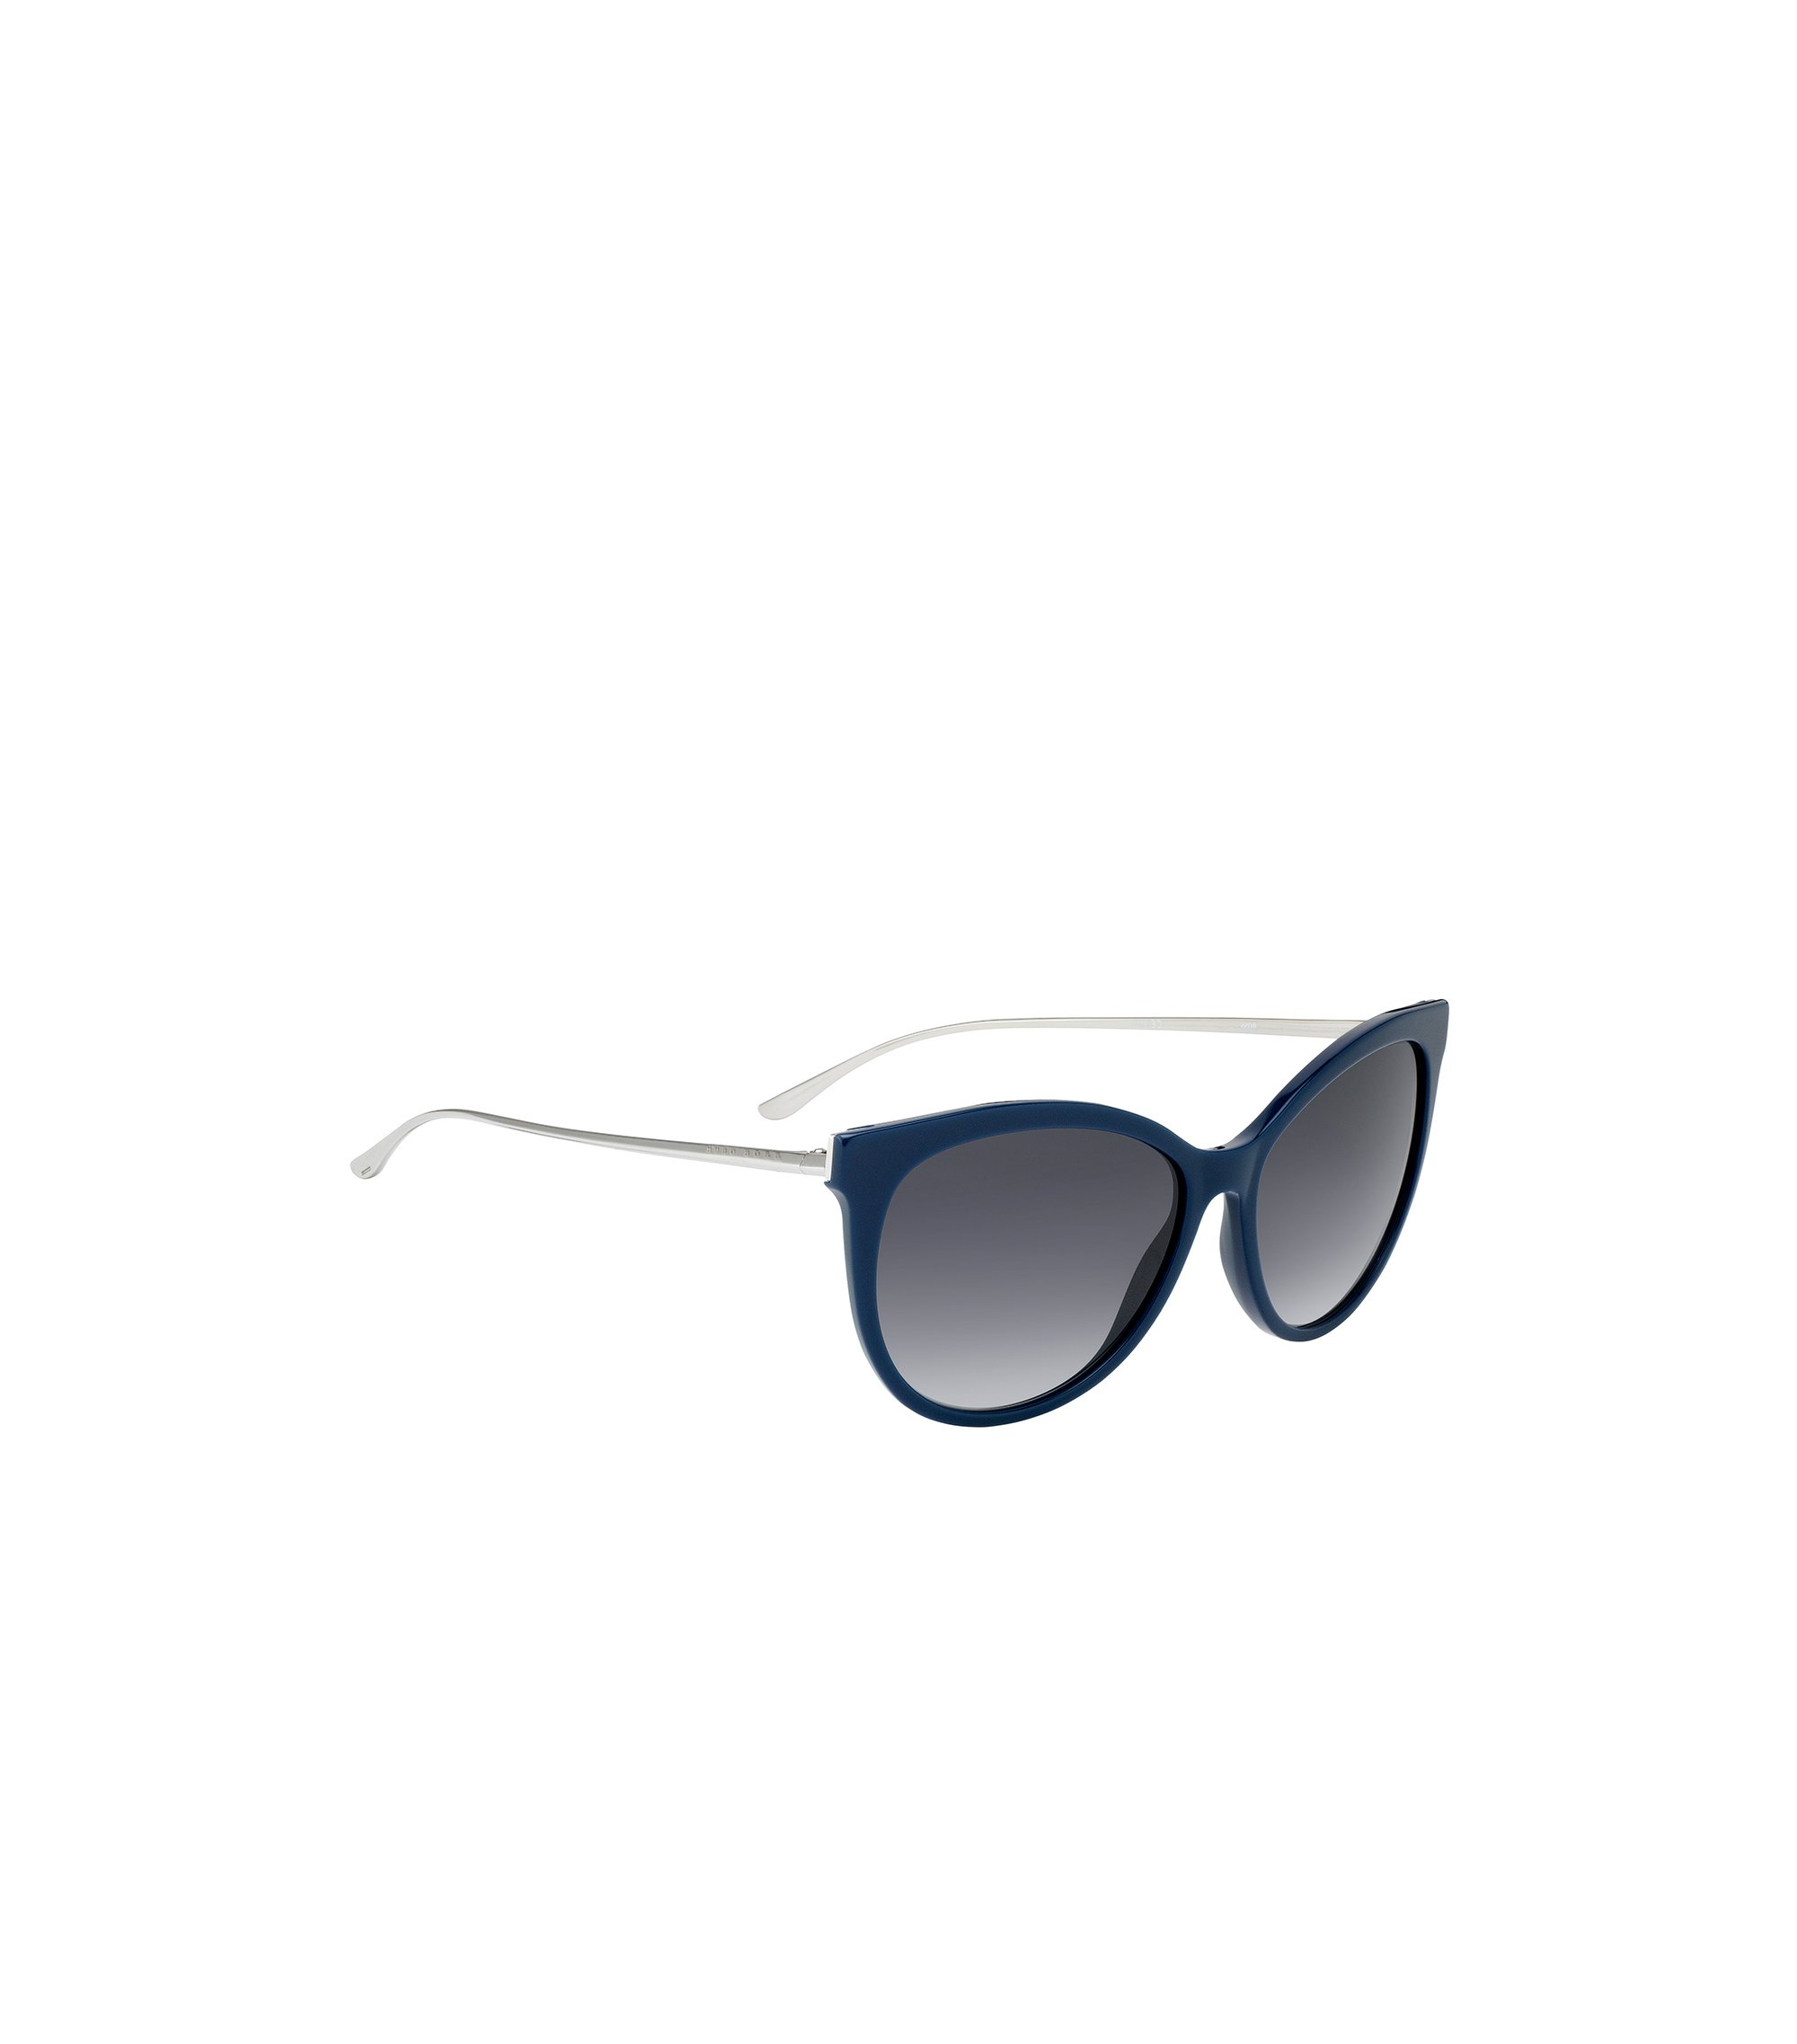 Occhiali da sole cat-eye con aste in metallo, Blu